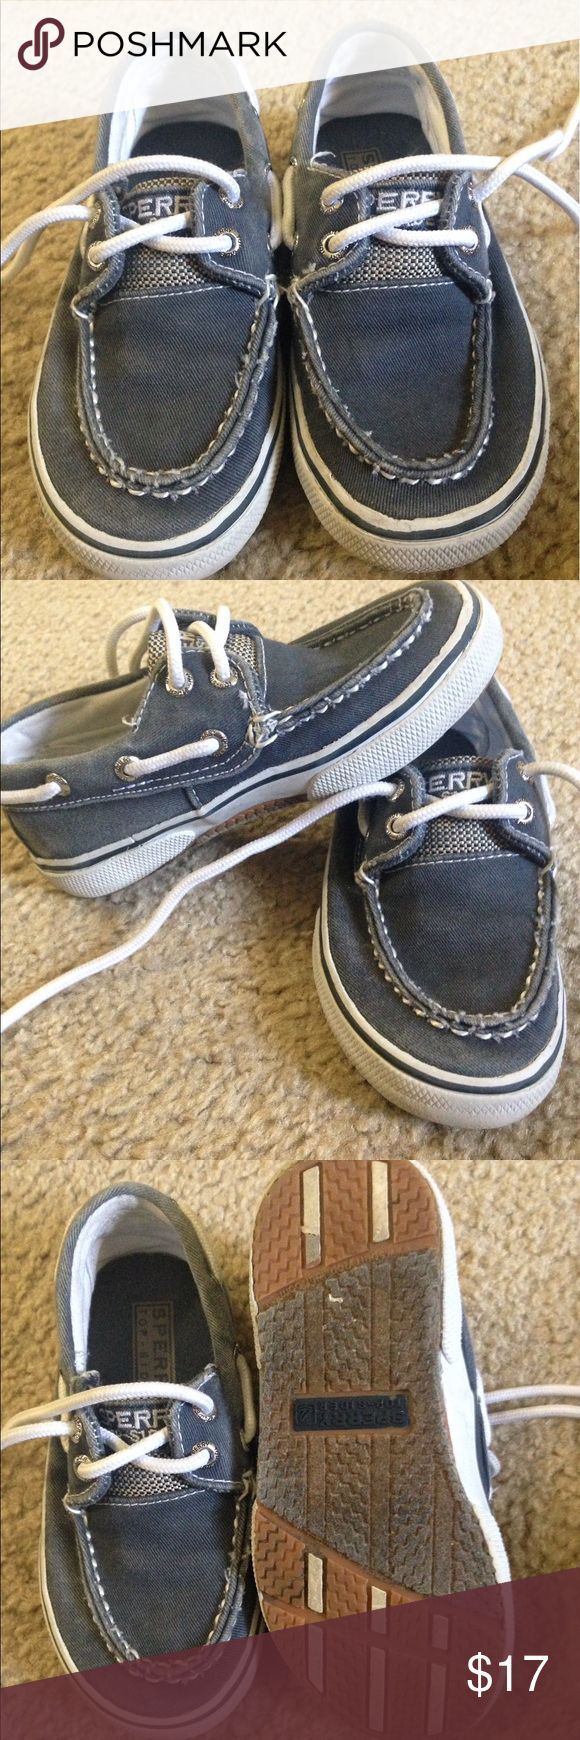 Boys Sperry Loafers Size 10c excellent used condition. Only worn on Sundays for church!!! Sperry Top-Sider Shoes Flats & Loafers